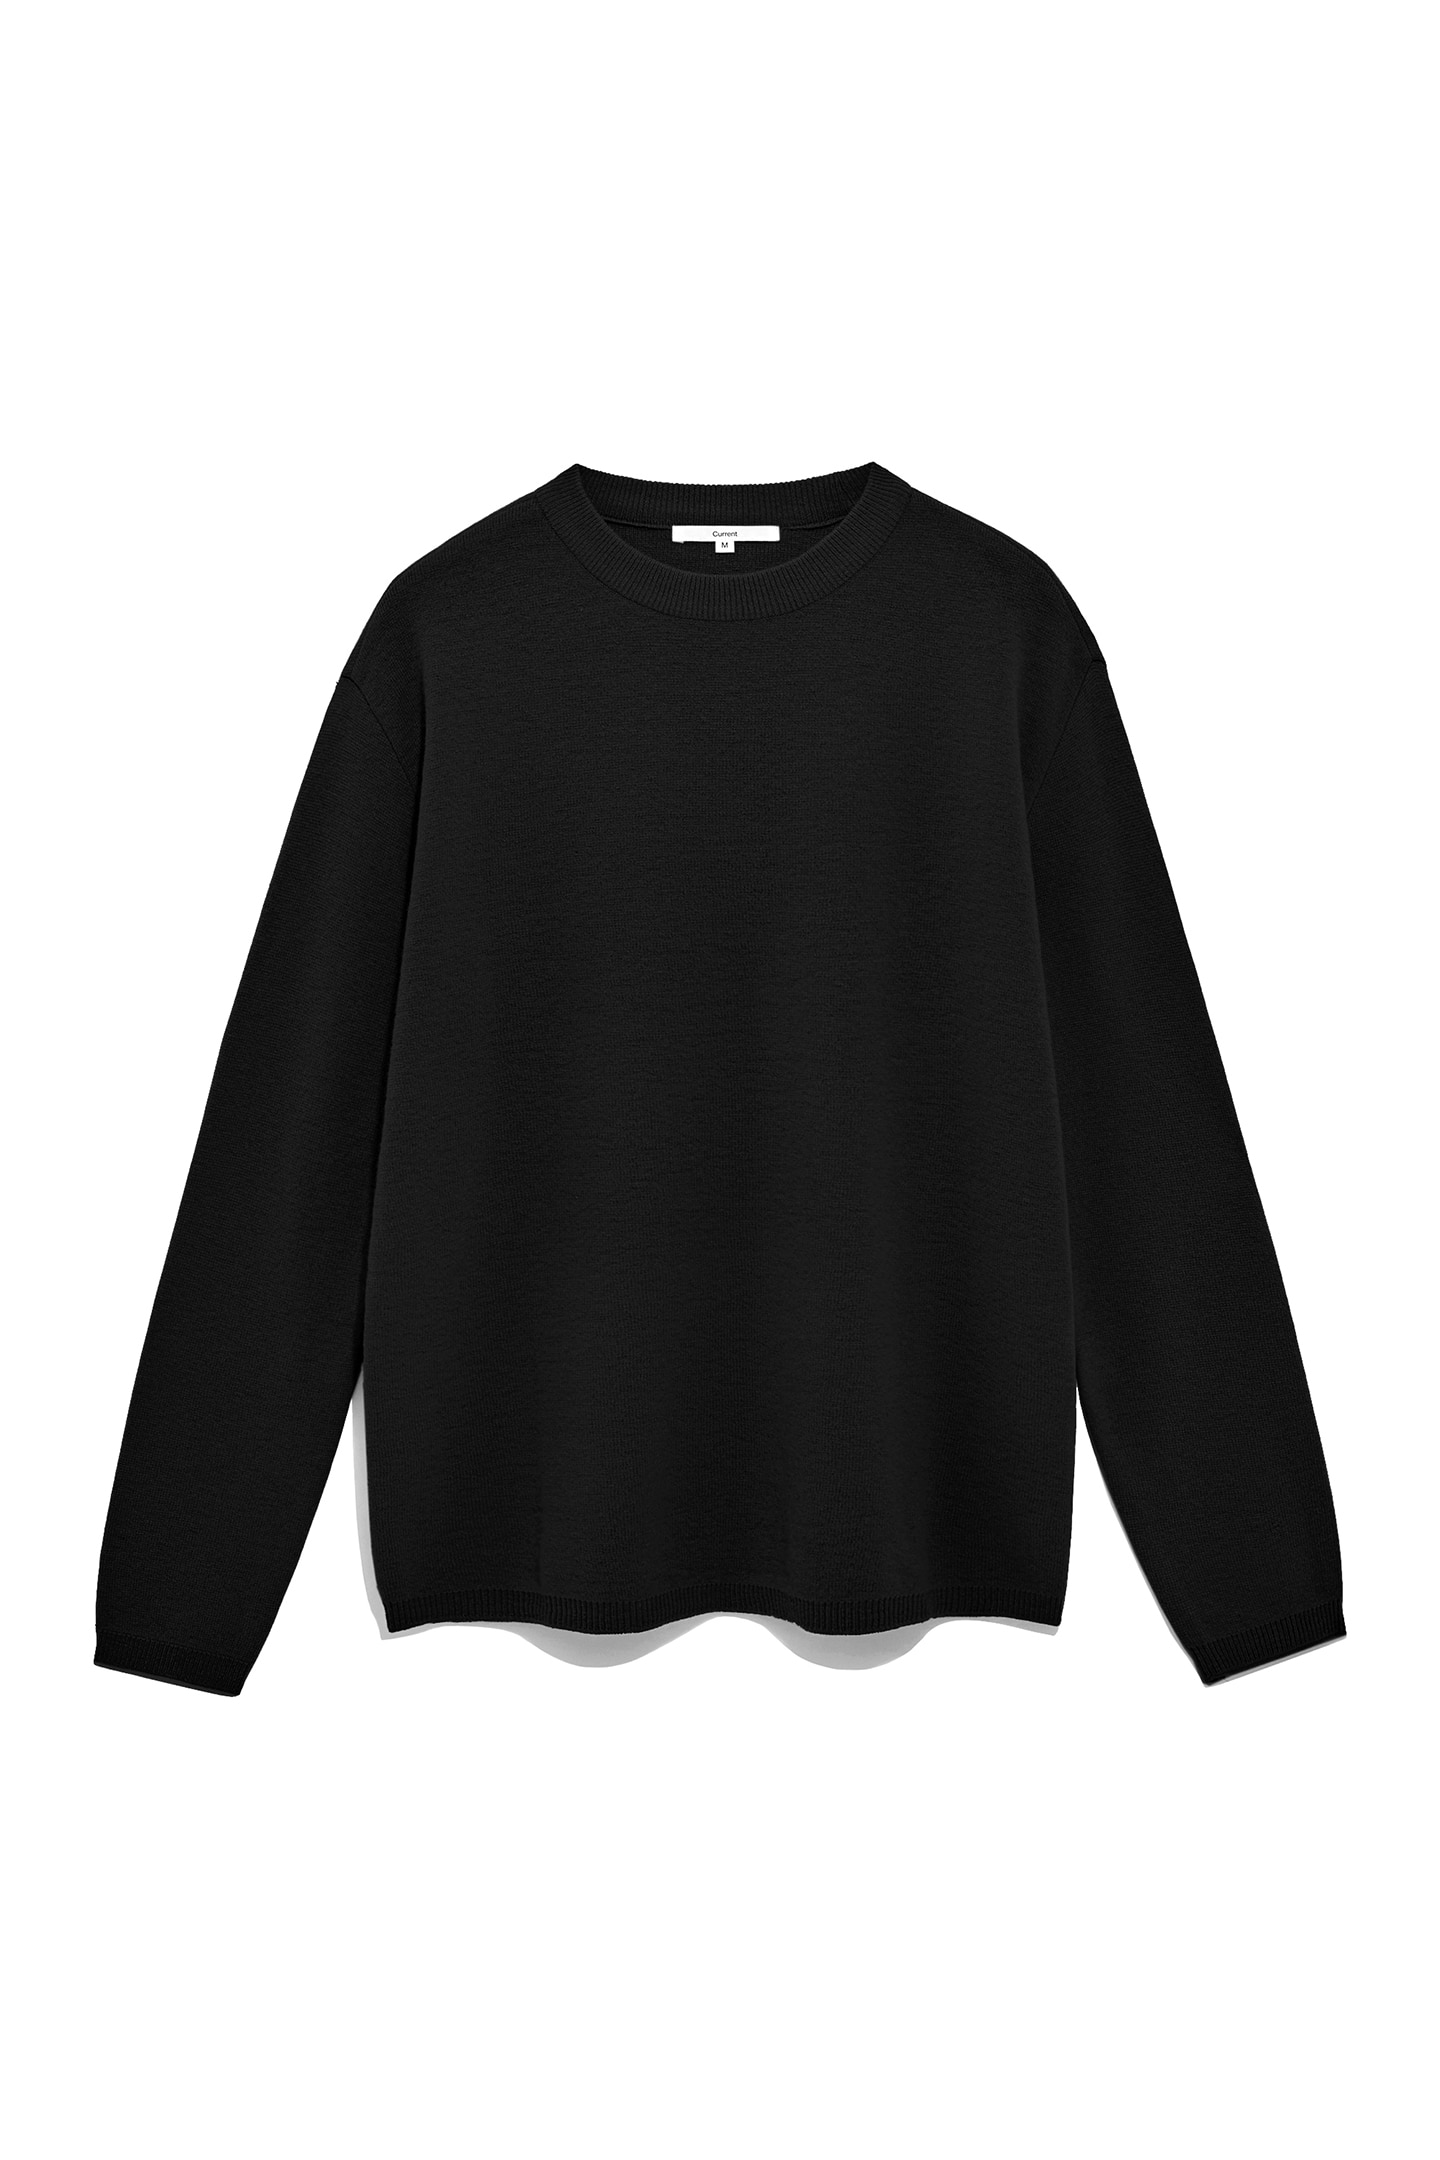 Premium Cash Knit [Black]